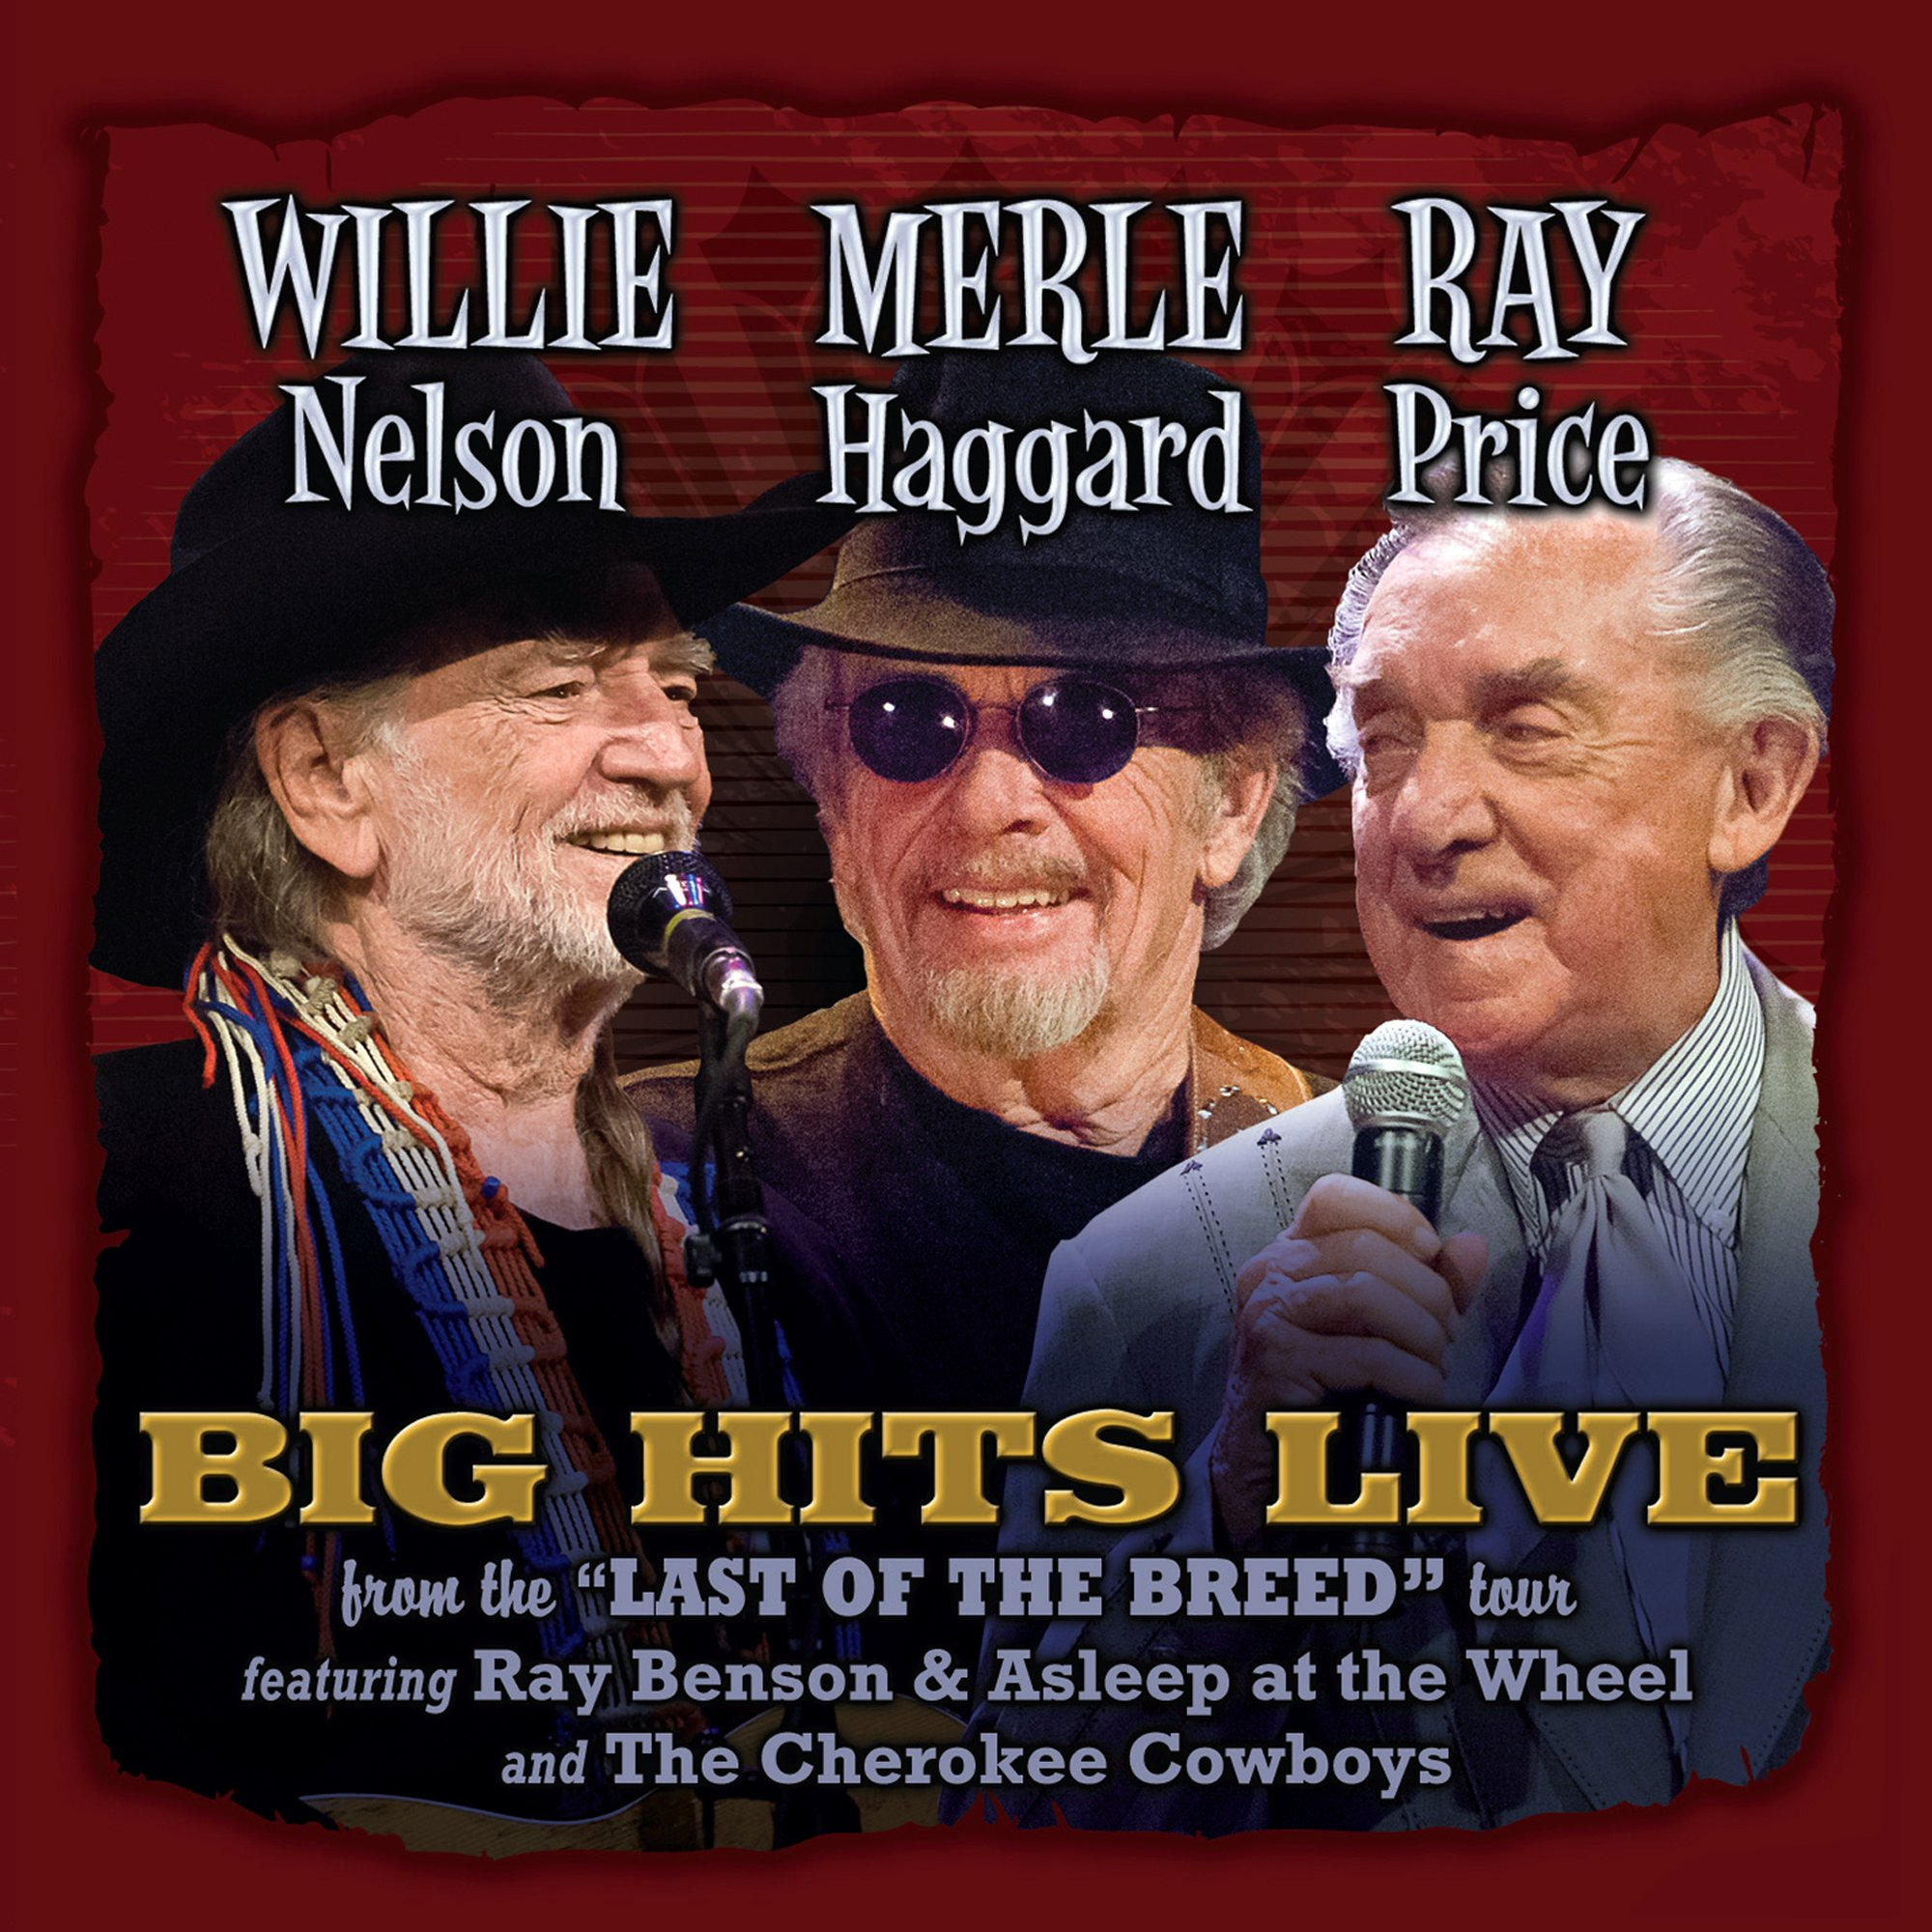 Willie Merle & Ray: Big Hits Live From The Last Of The Breed Tour by Tophat